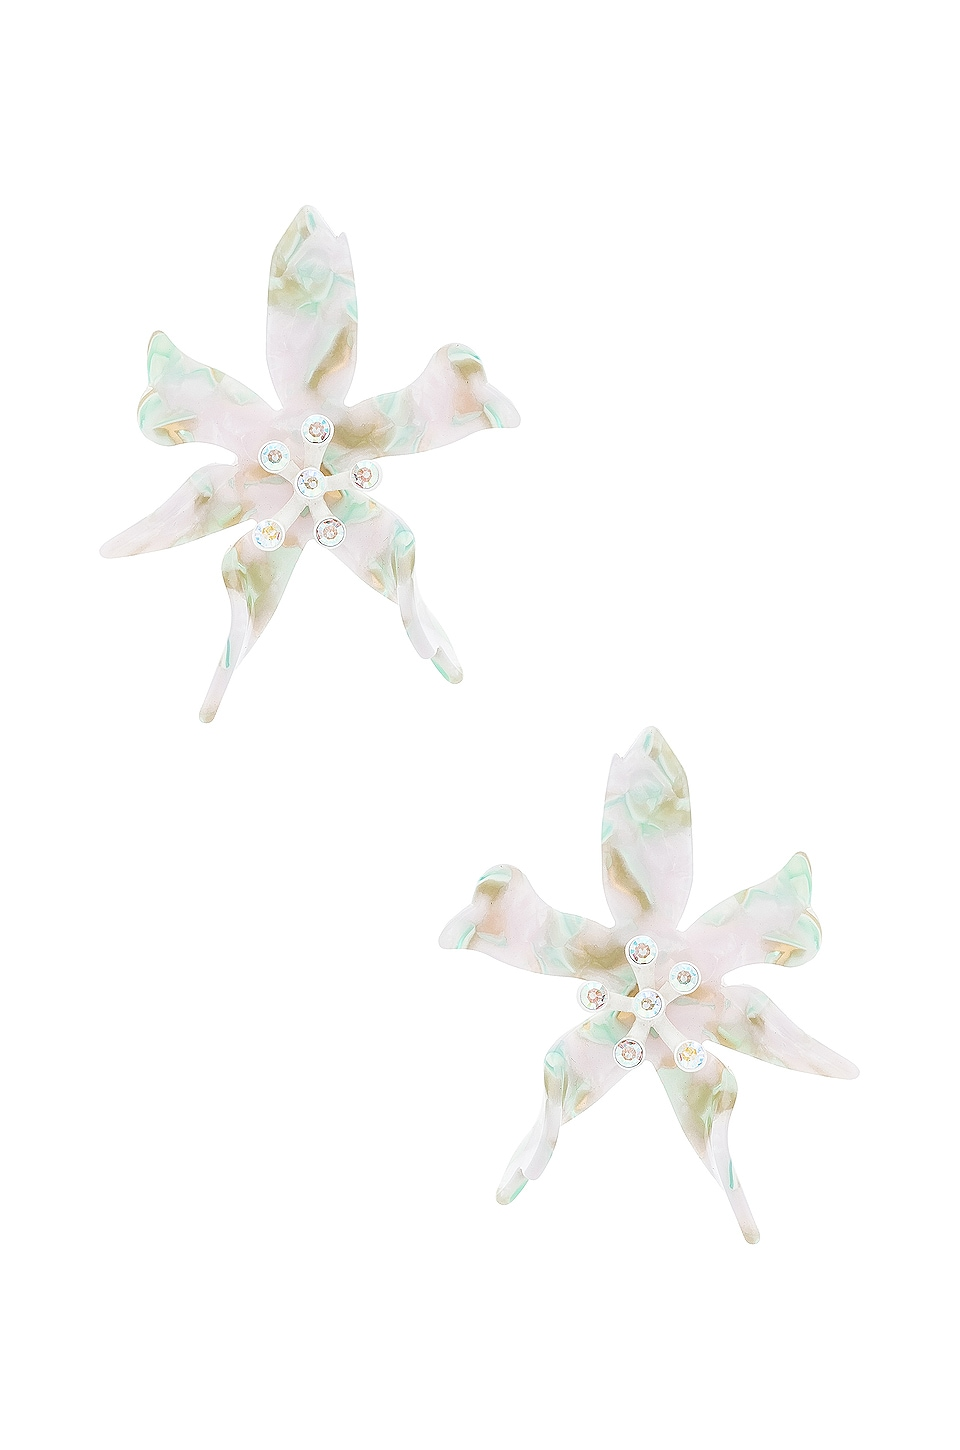 Lele Sadoughi Water Lily Earrings in Moonstone